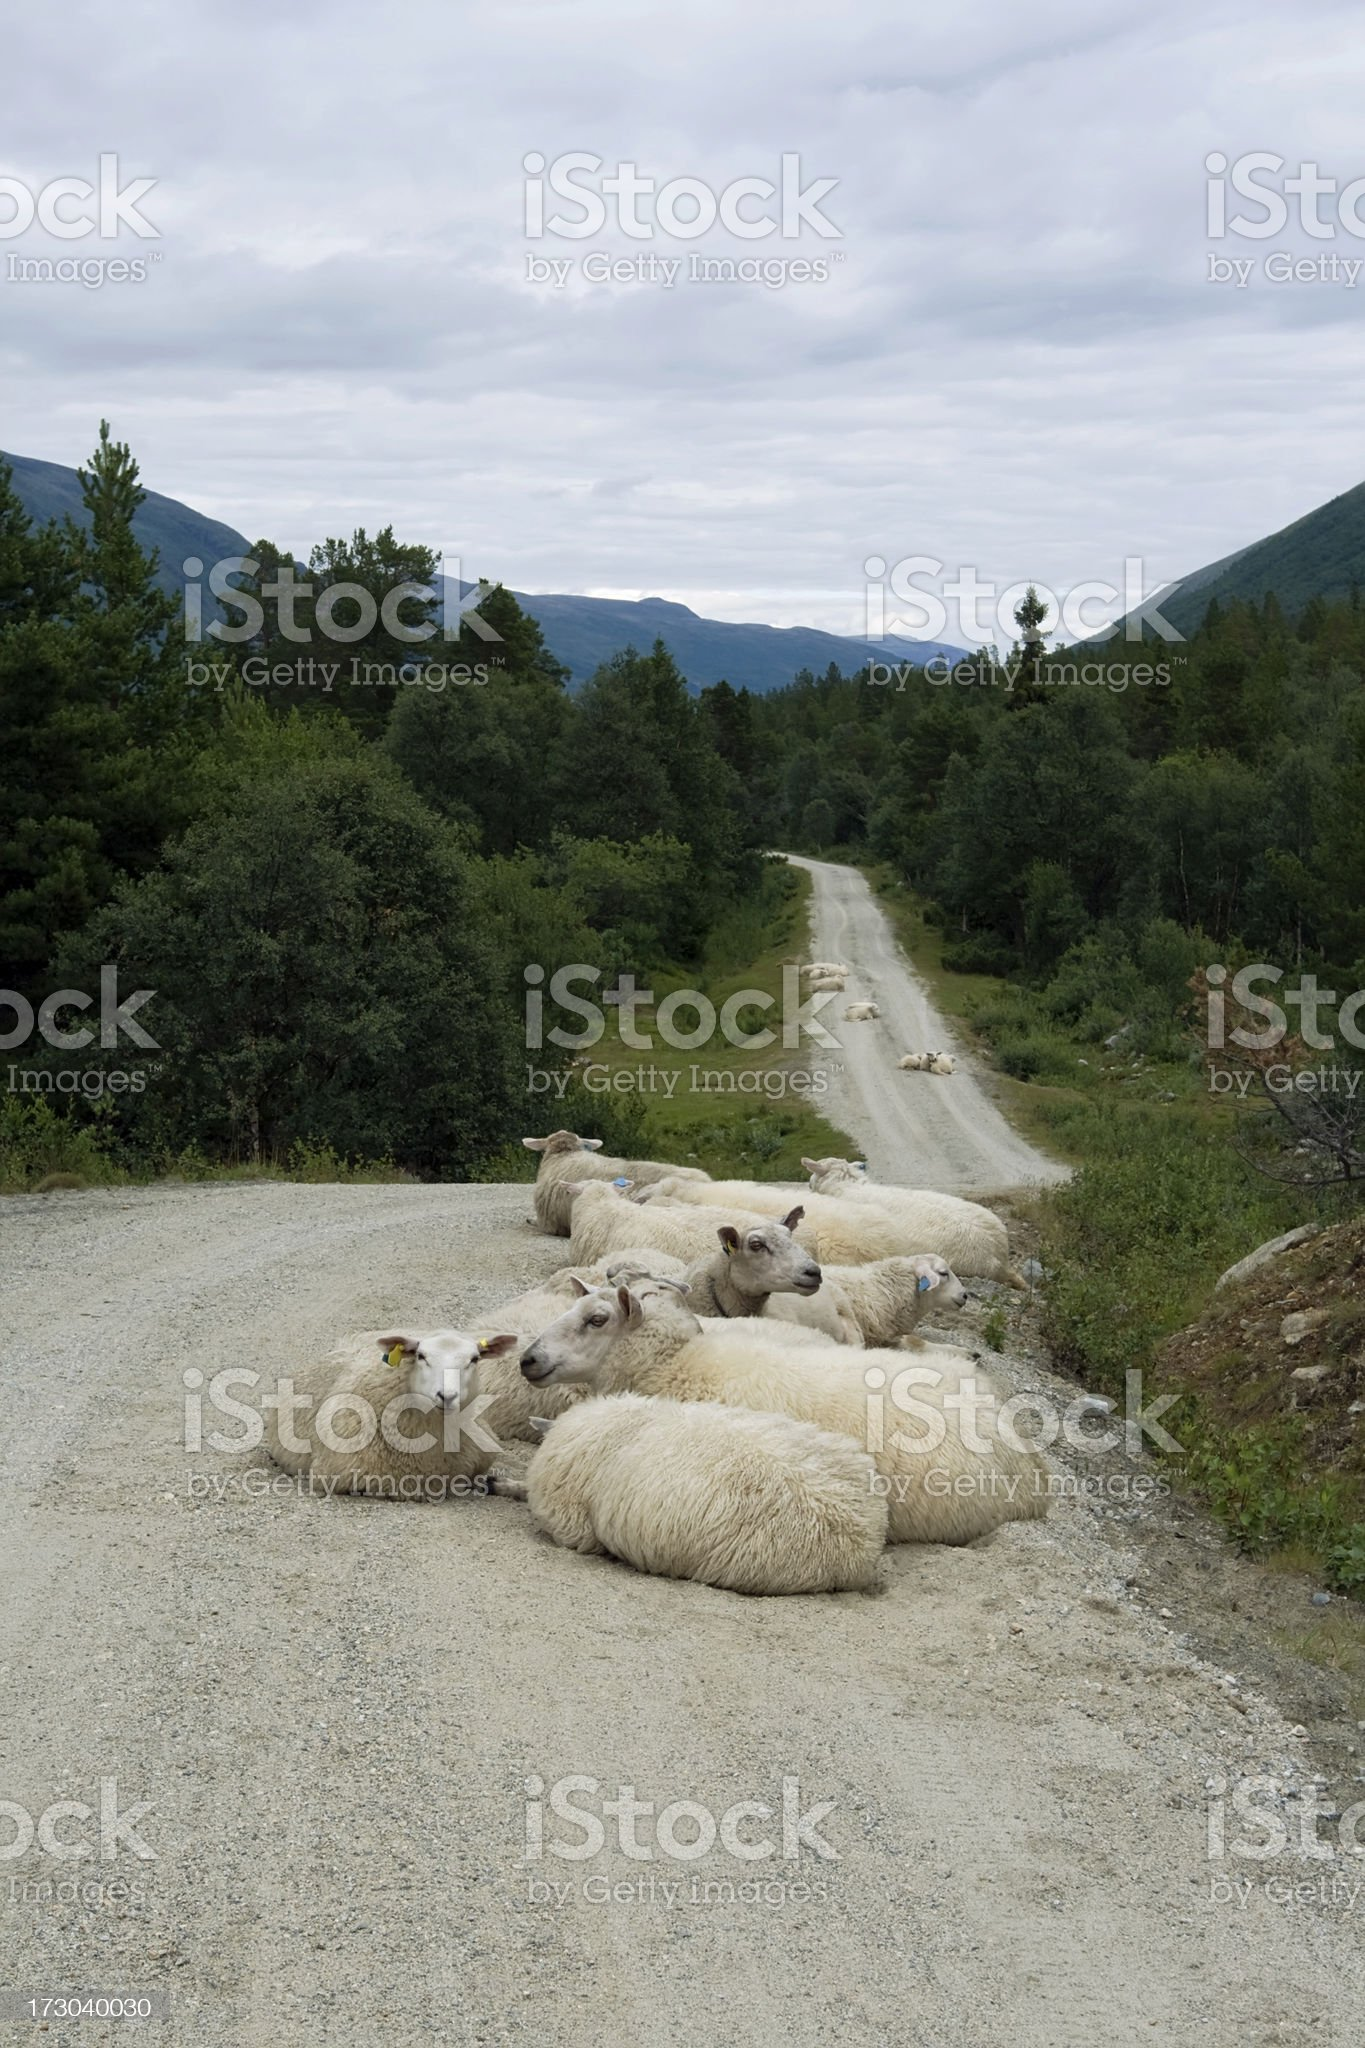 Flock of sheep resting on road in Norwegian mountains. royalty-free stock photo